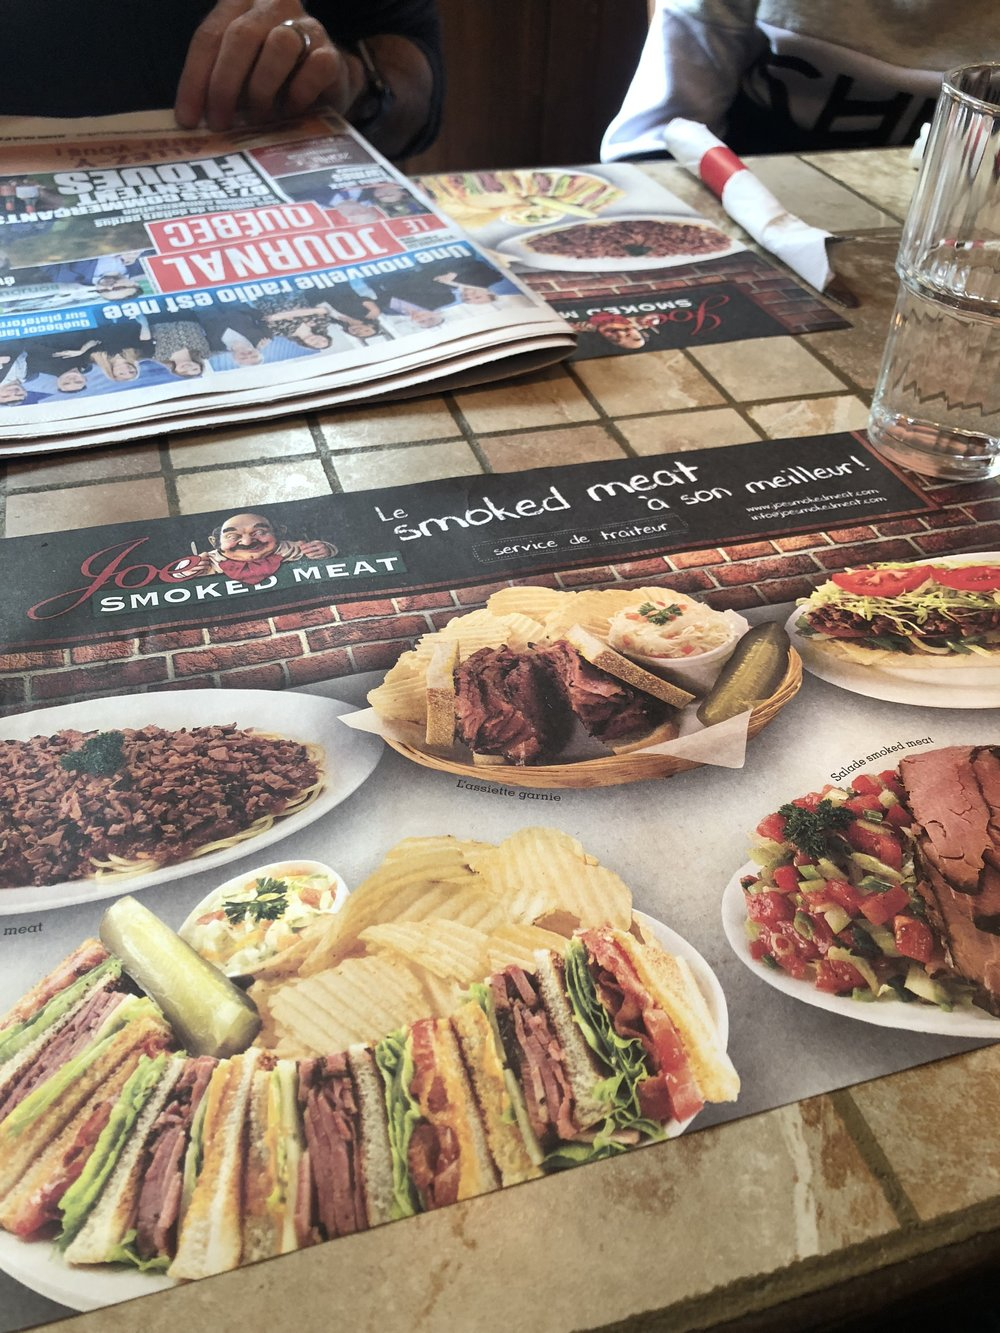 Joe Smoked Meat, Charlevoix, voyage en famille, adresses gourmandes, je suis une maman